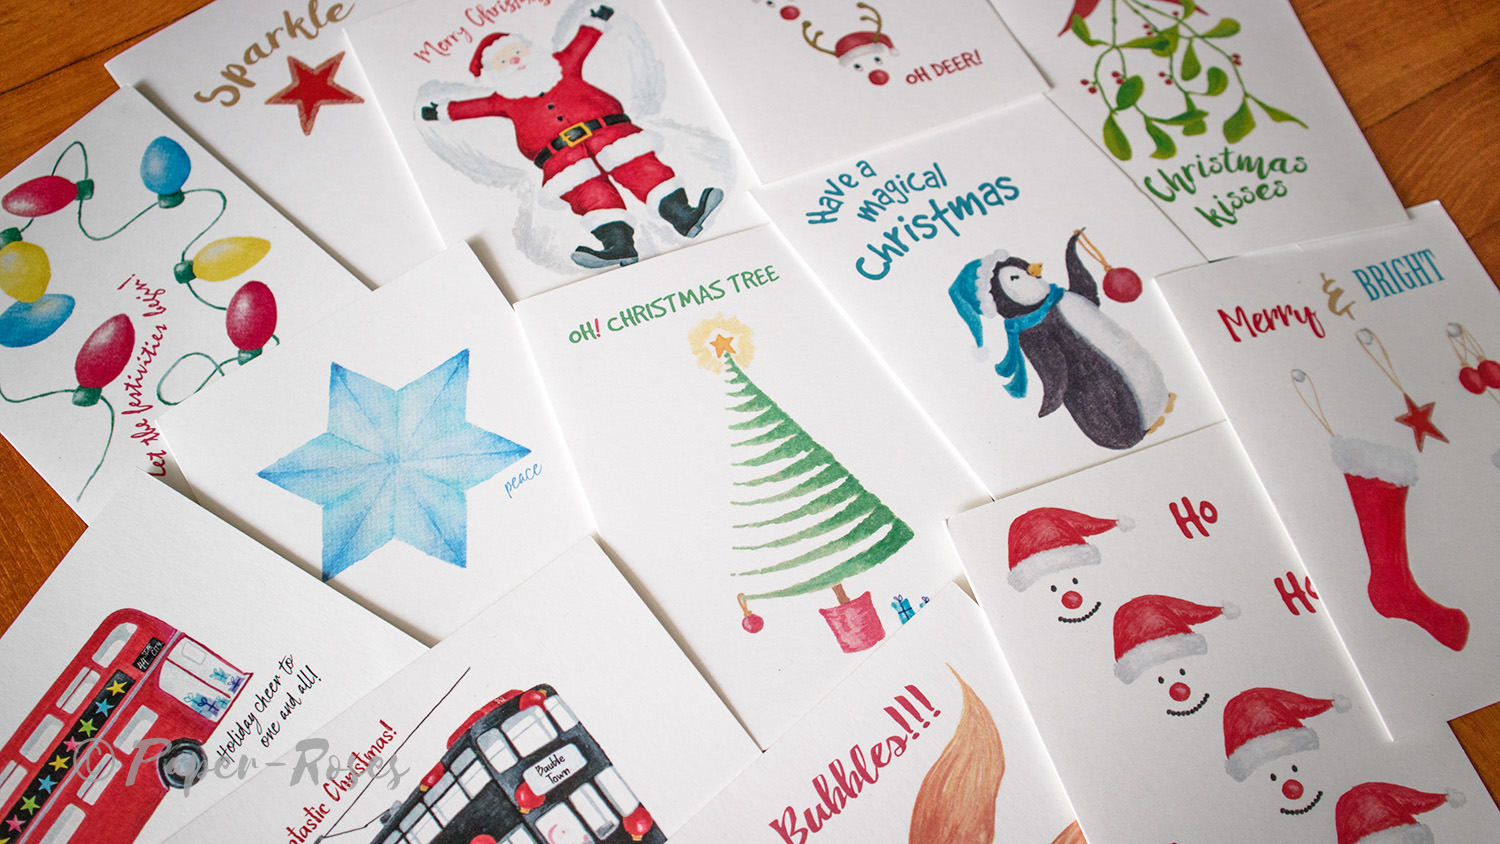 Paper-Roses | Festive shop | Christmas and holiday cards